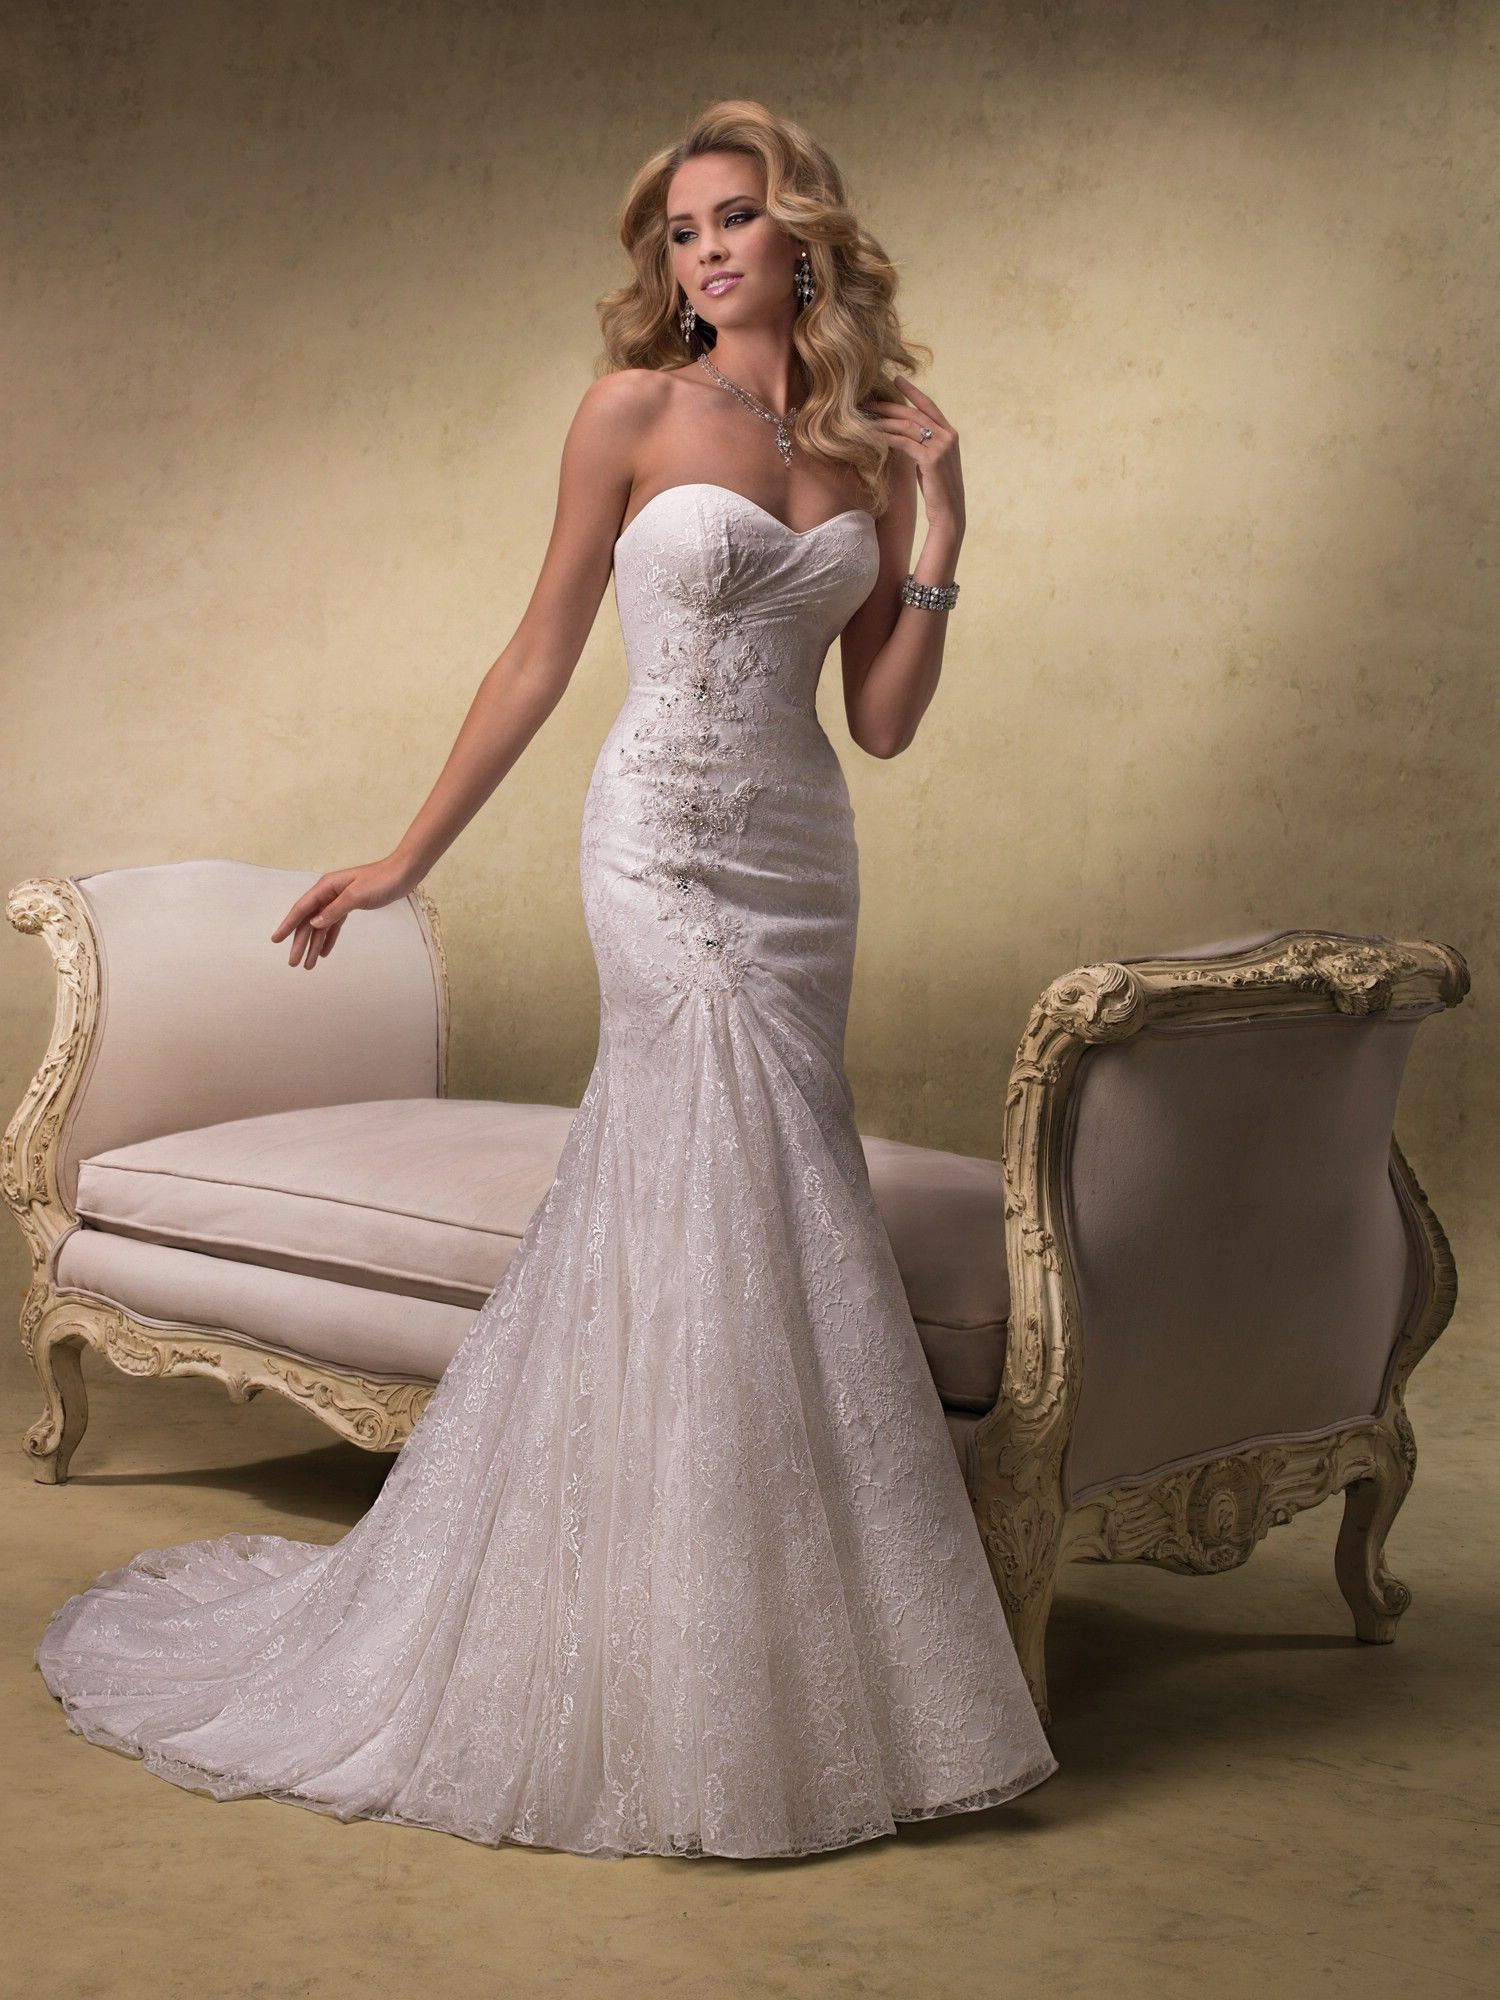 Mermaid Wedding Dresses Online Shop Cheap Designer Mermaid Wedding